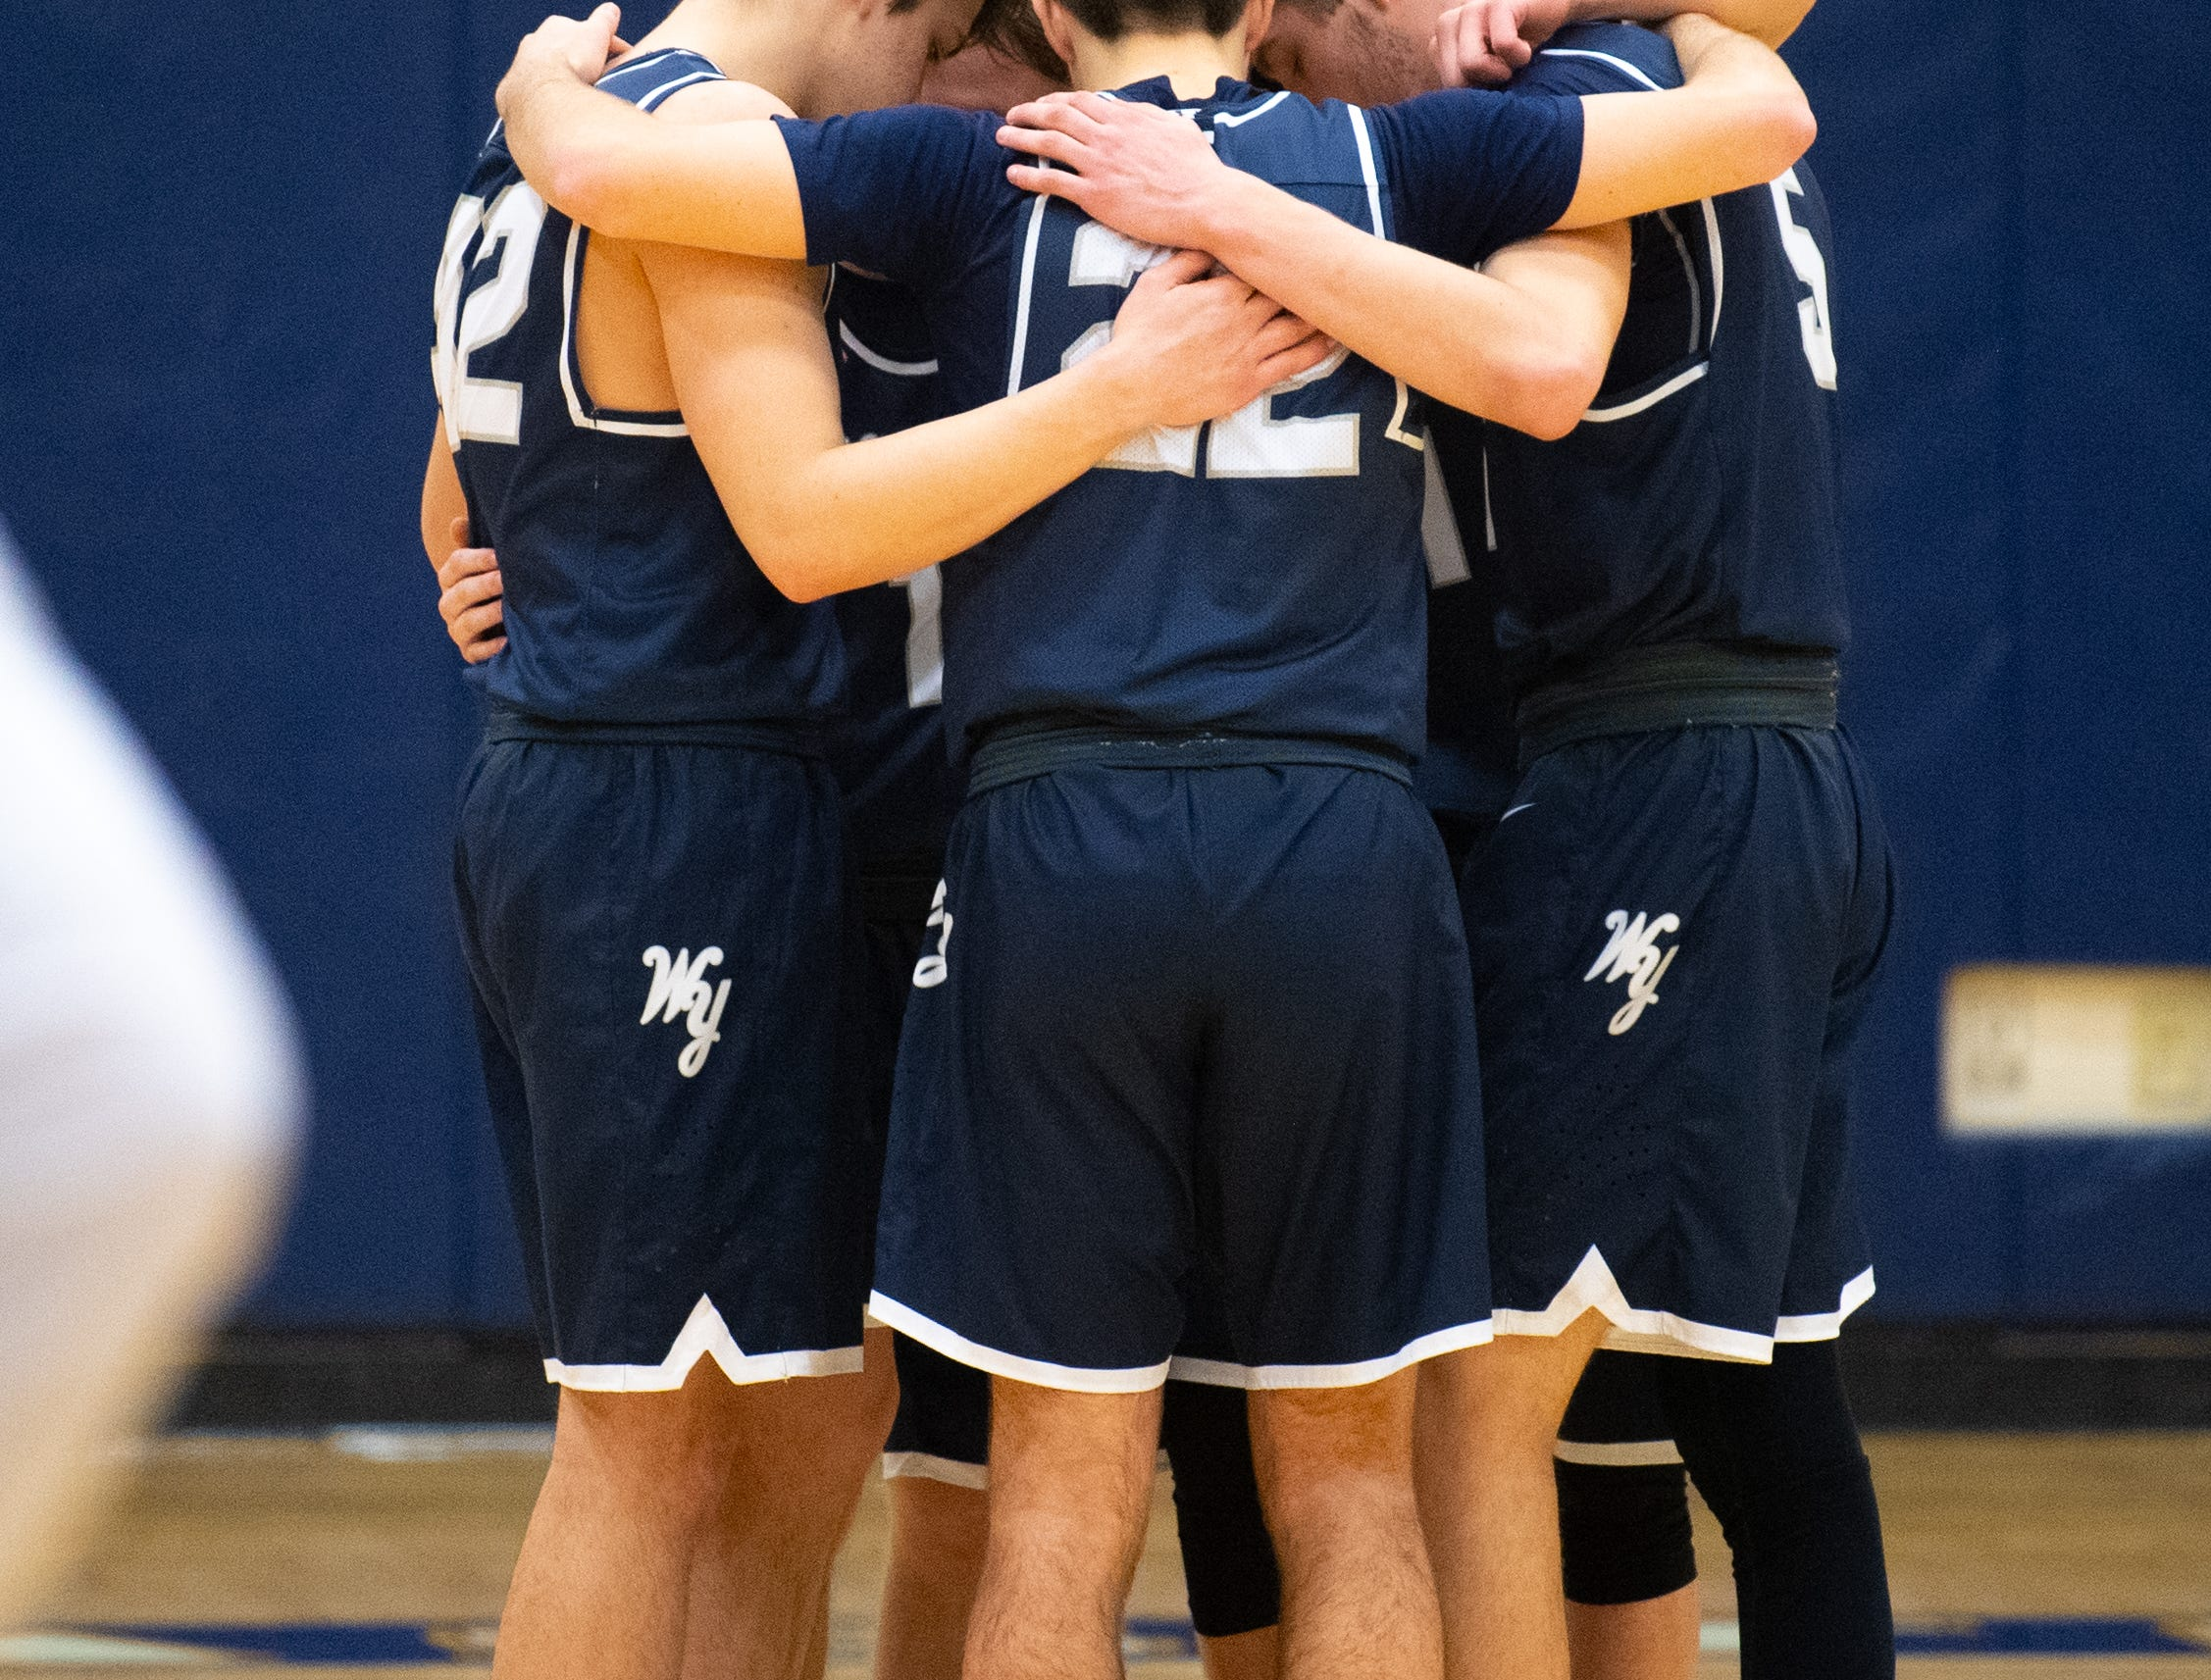 West York's starters gather together during the YAIAA boys' basketball game between Eastern York and West York, Friday, January 25, 2019. The Golden Knights defeated the Bulldogs 59 to 55.